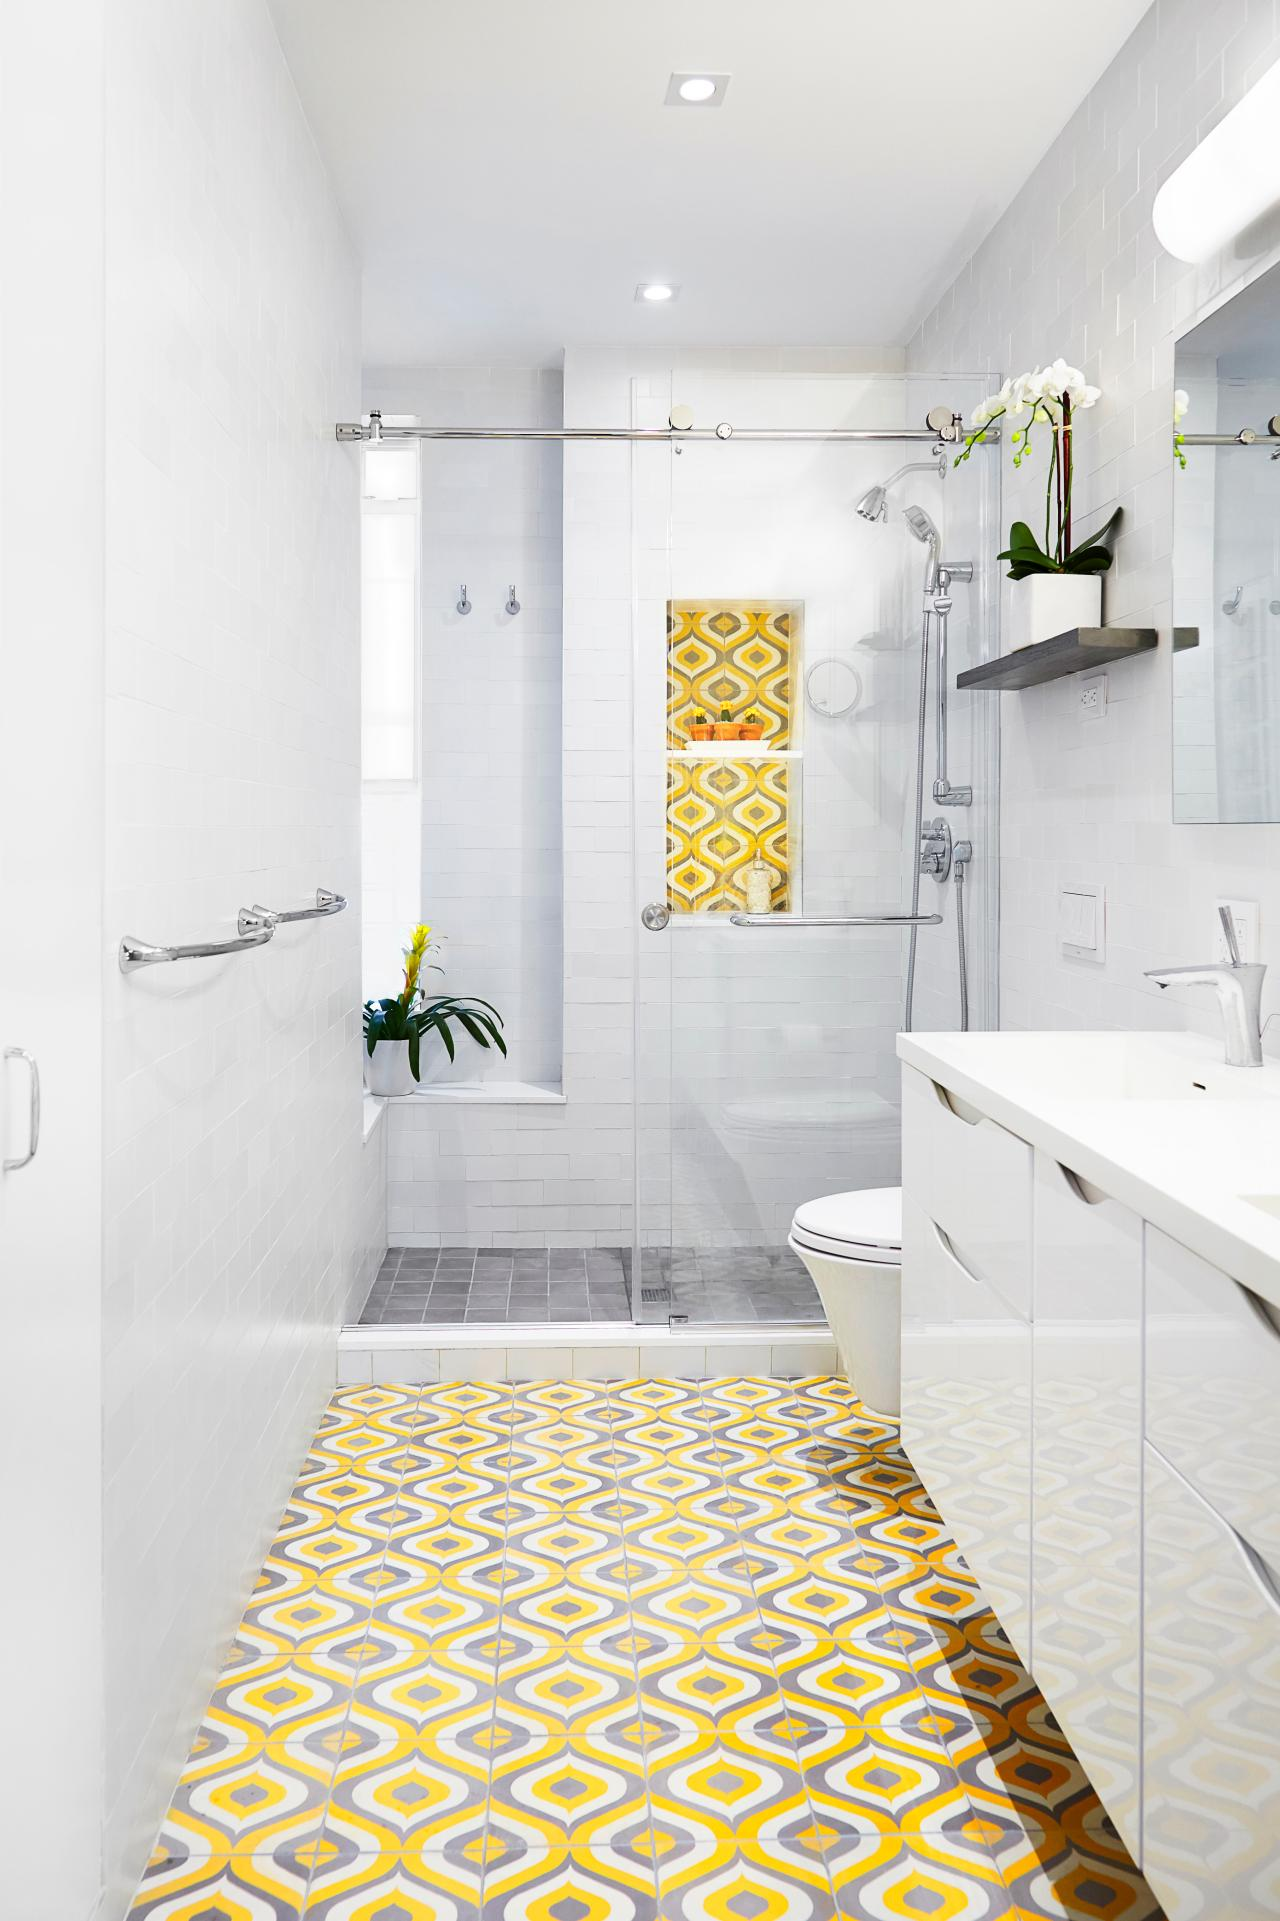 Top 20 Bathroom Tile Trends Of 2017 Hgtv 39 S Decorating